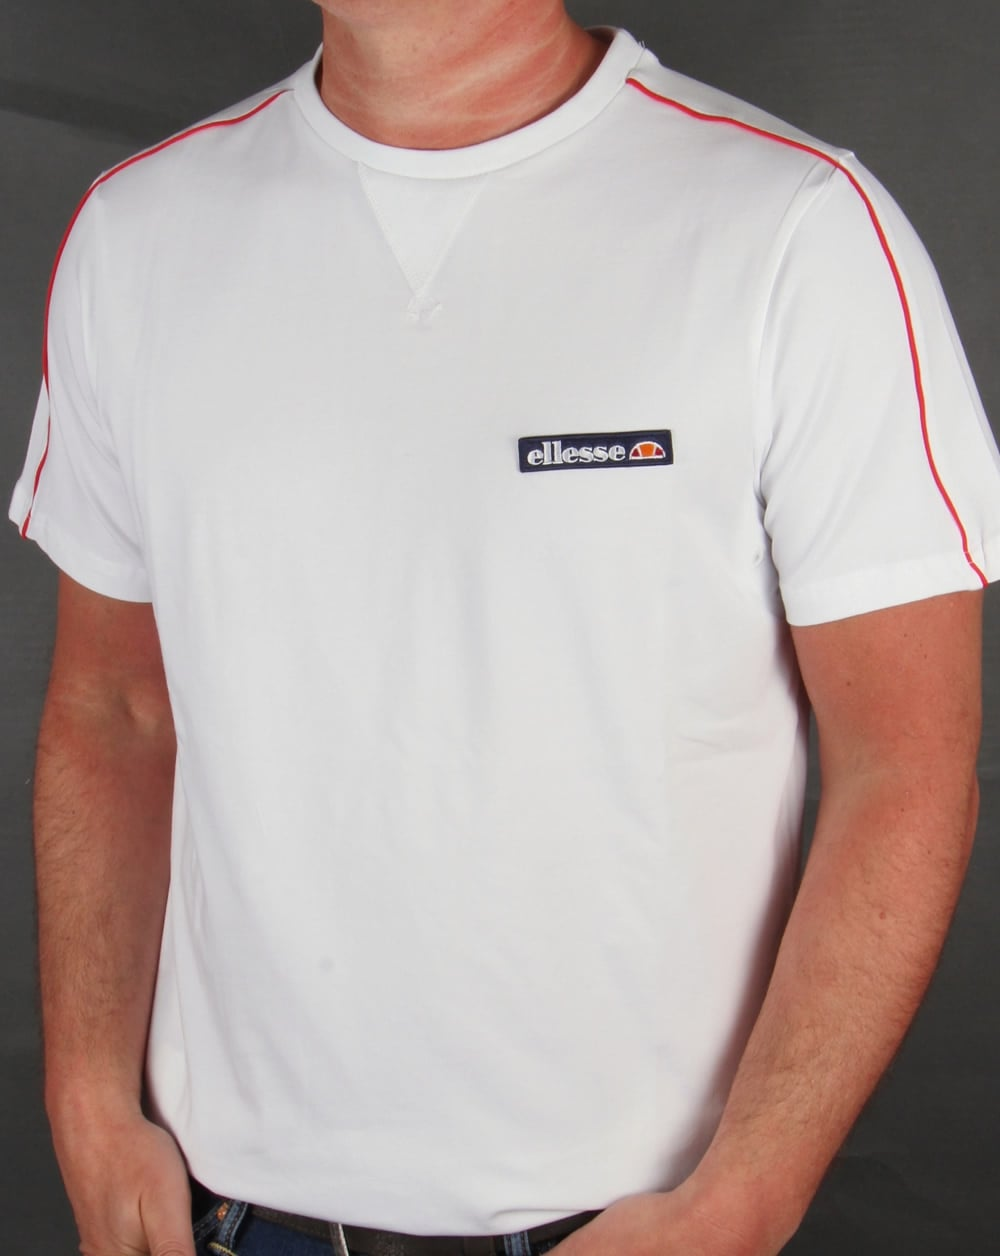 ellesse san ginesio t shirt white tee mens crew round neck. Black Bedroom Furniture Sets. Home Design Ideas